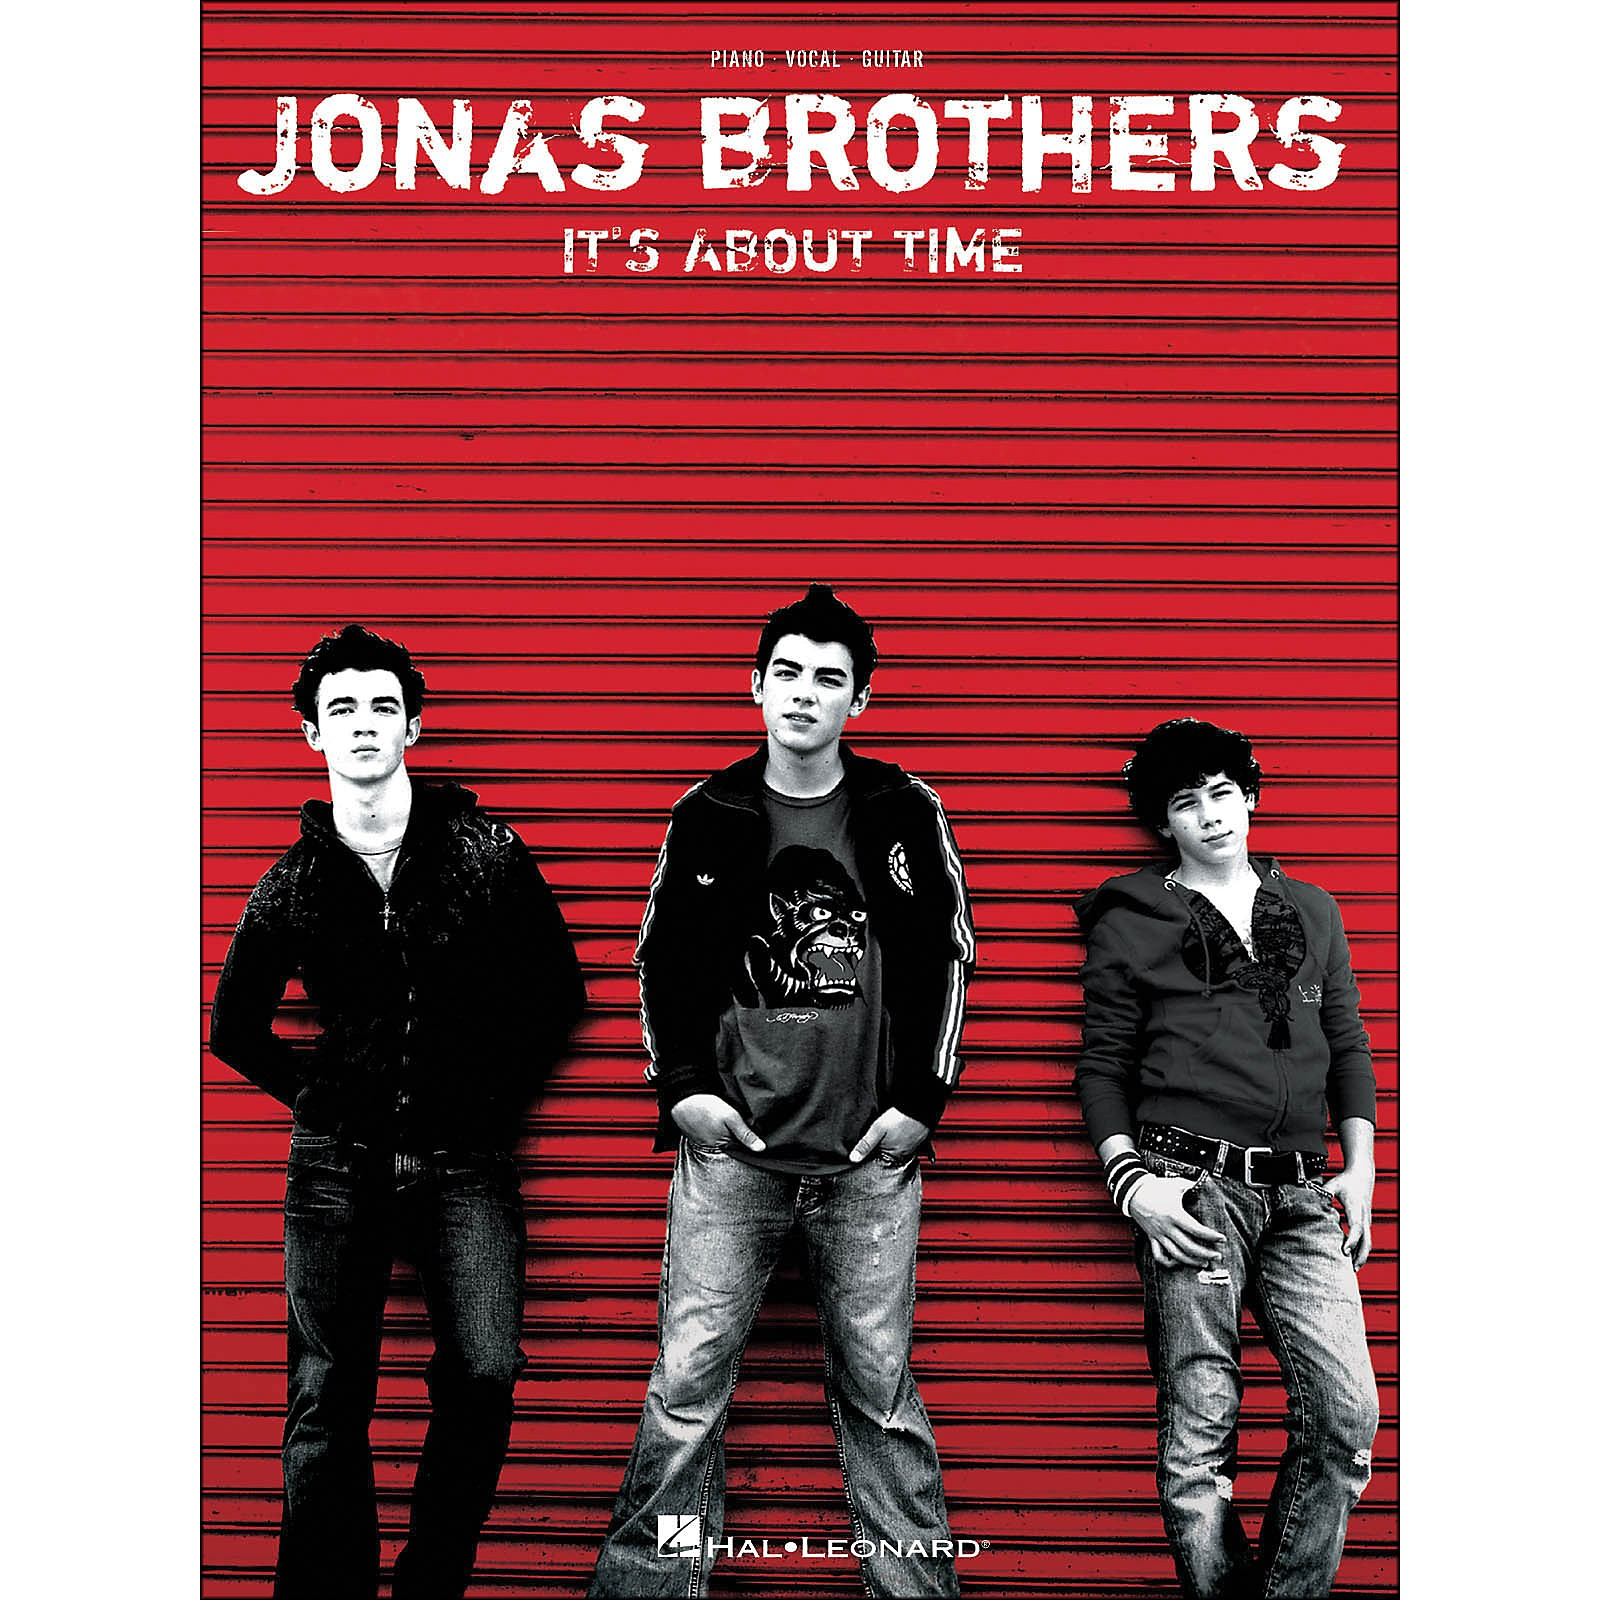 Hal Leonard Jonas Brothers It's About Time arranged for piano, vocal, and guitar (P/V/G)